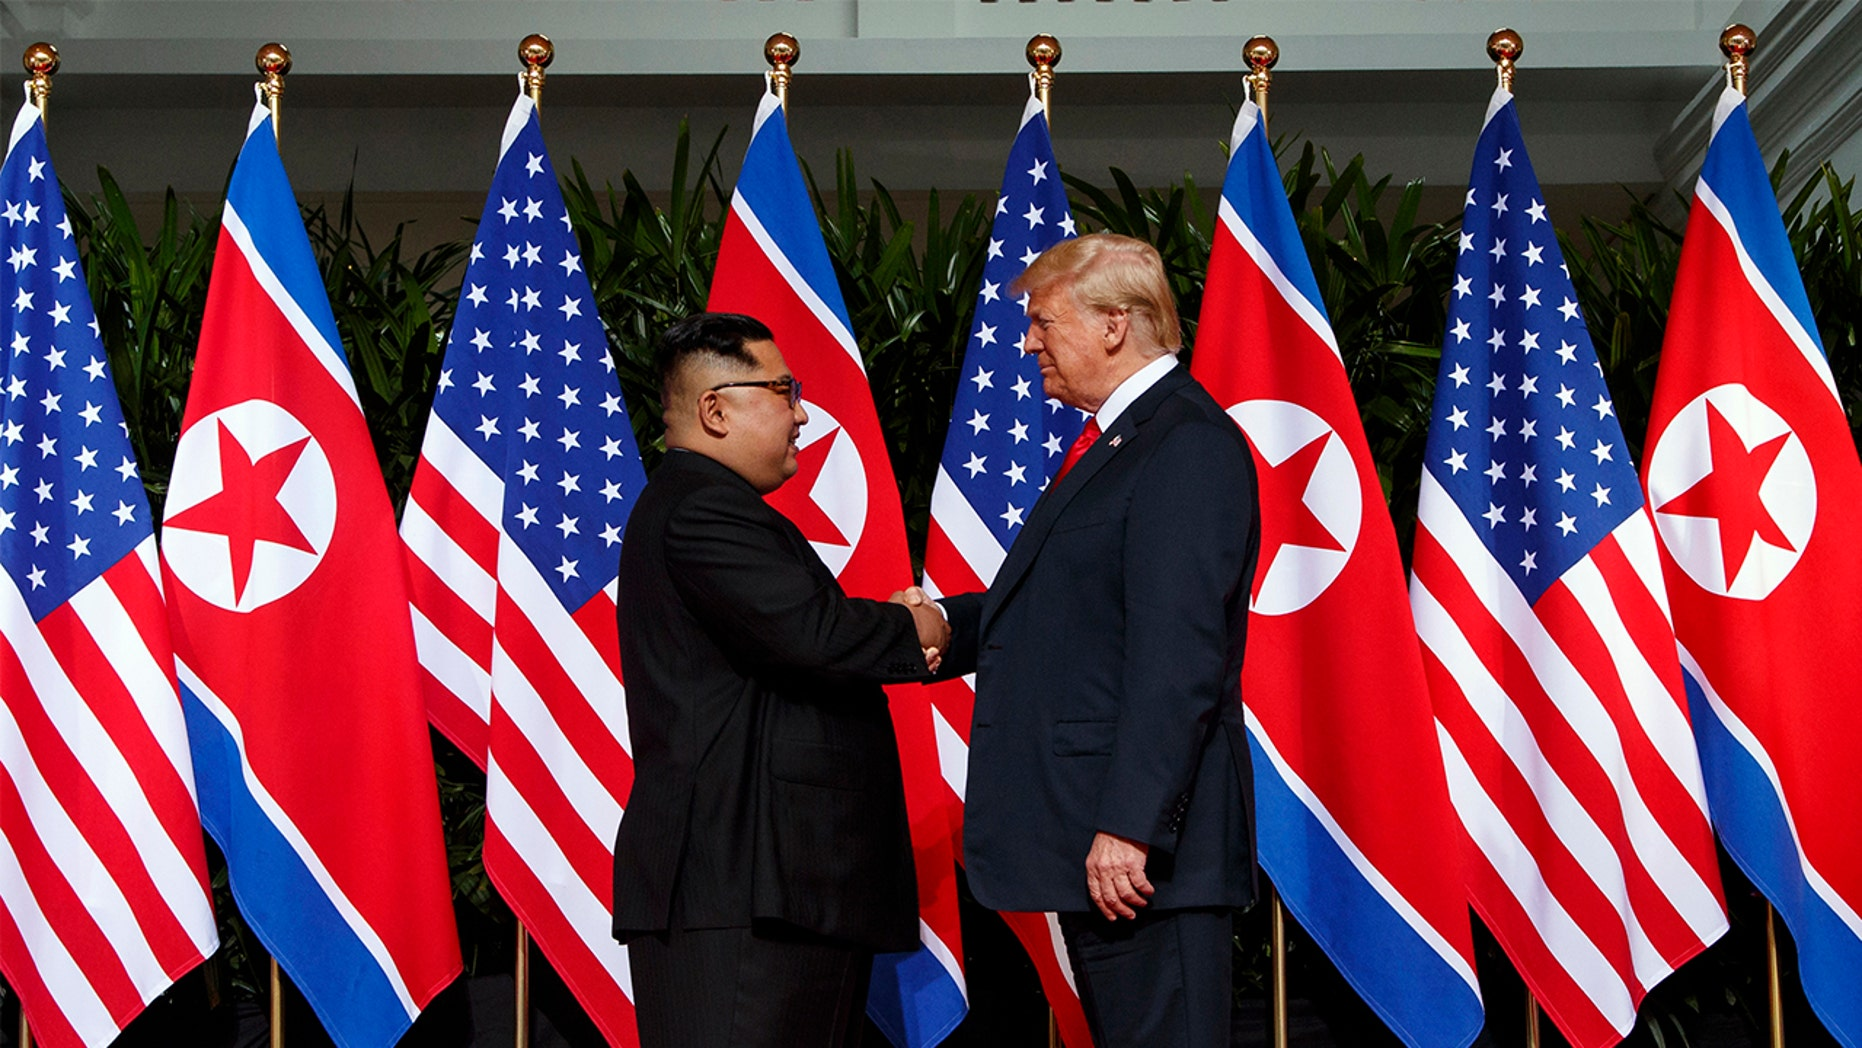 President Trump met with North Korean Leader Kim Jong Un in Singapore on June 12.